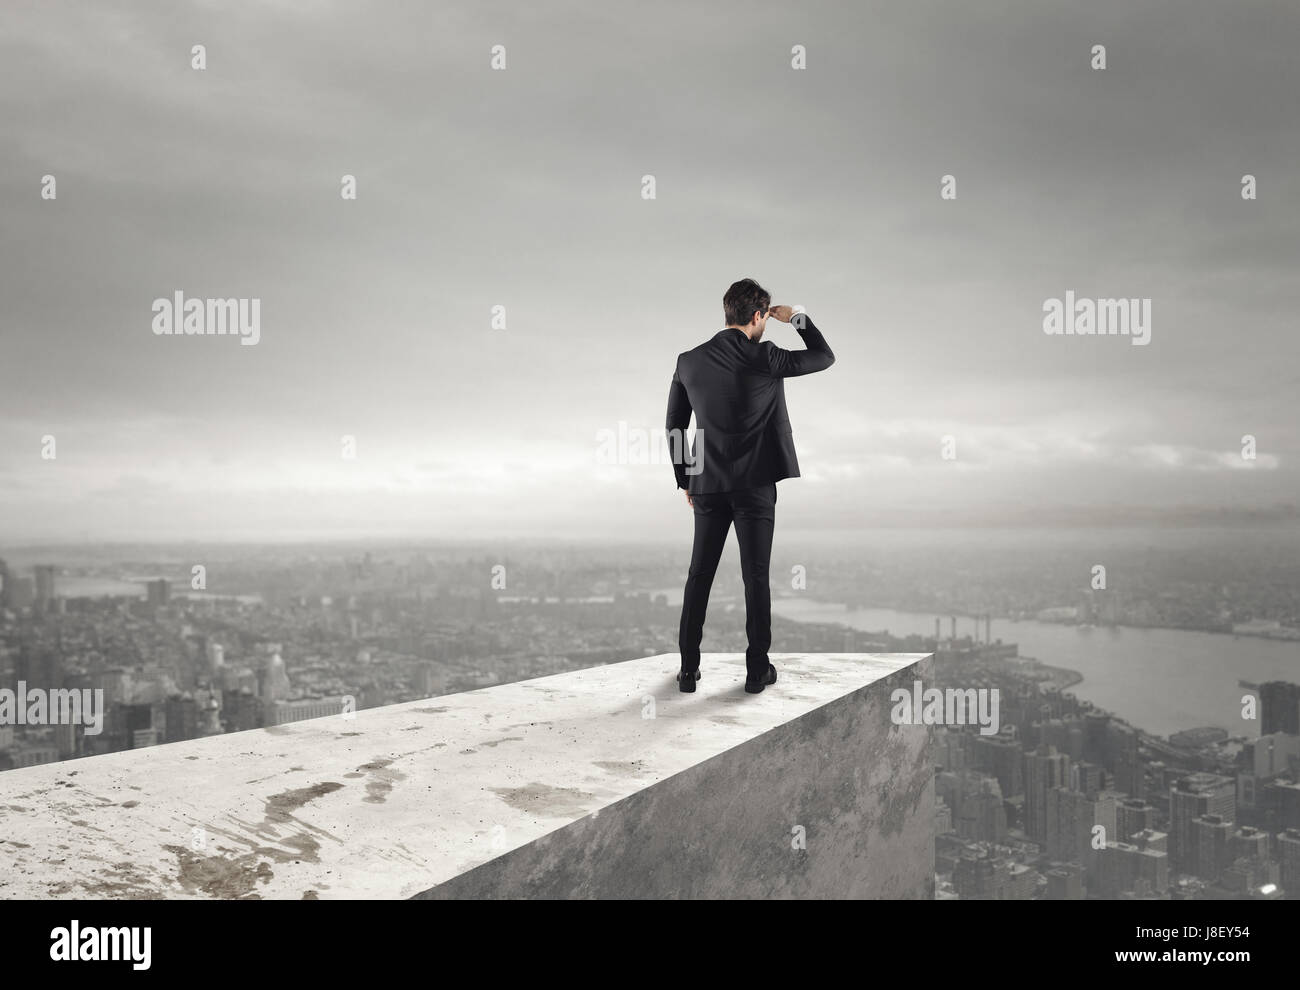 Look to the future - Stock Image